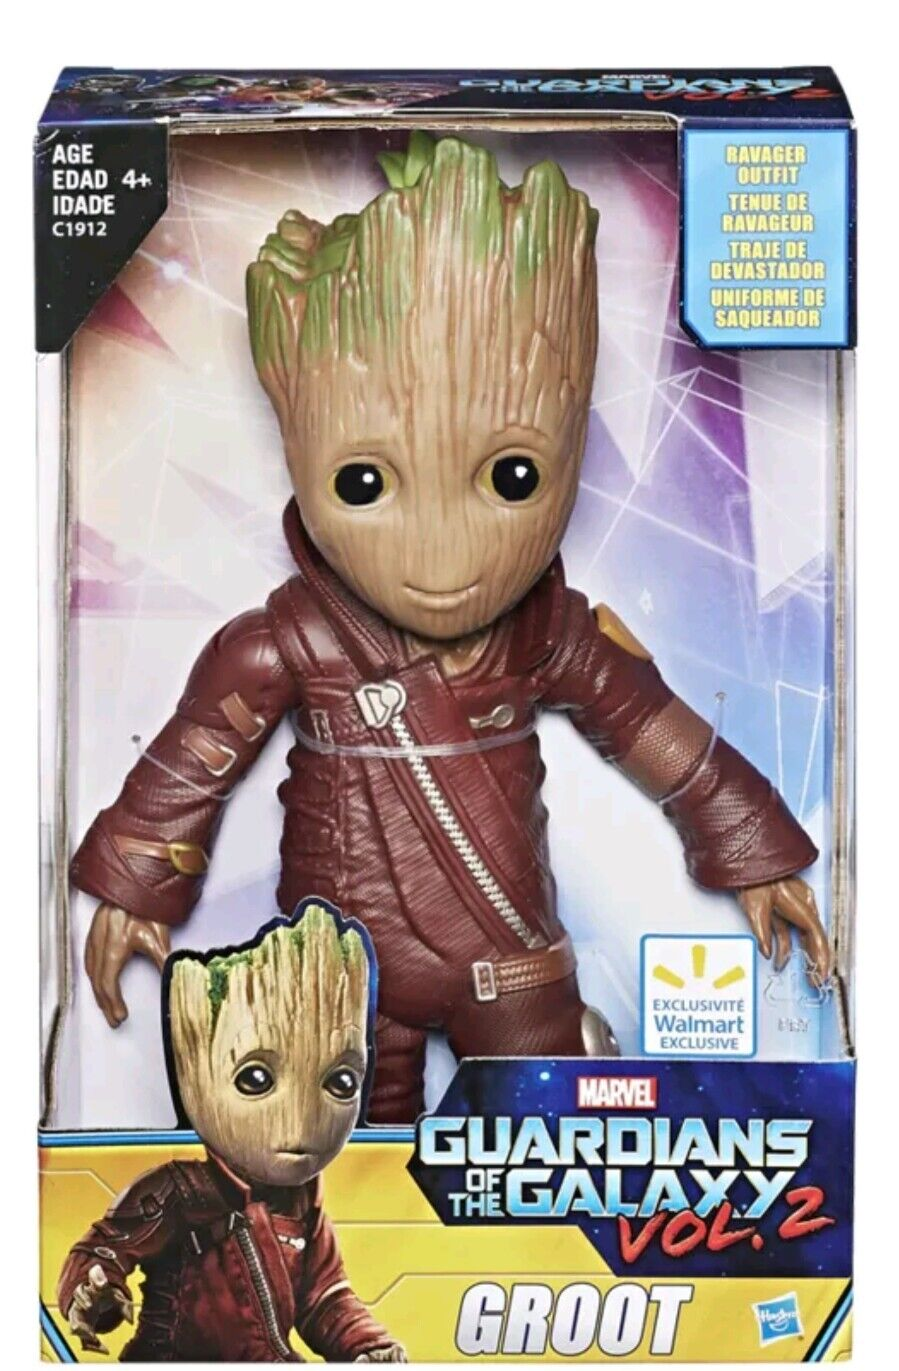 Hasbro Marvel Guardians of the Galaxy Baby Groot 10